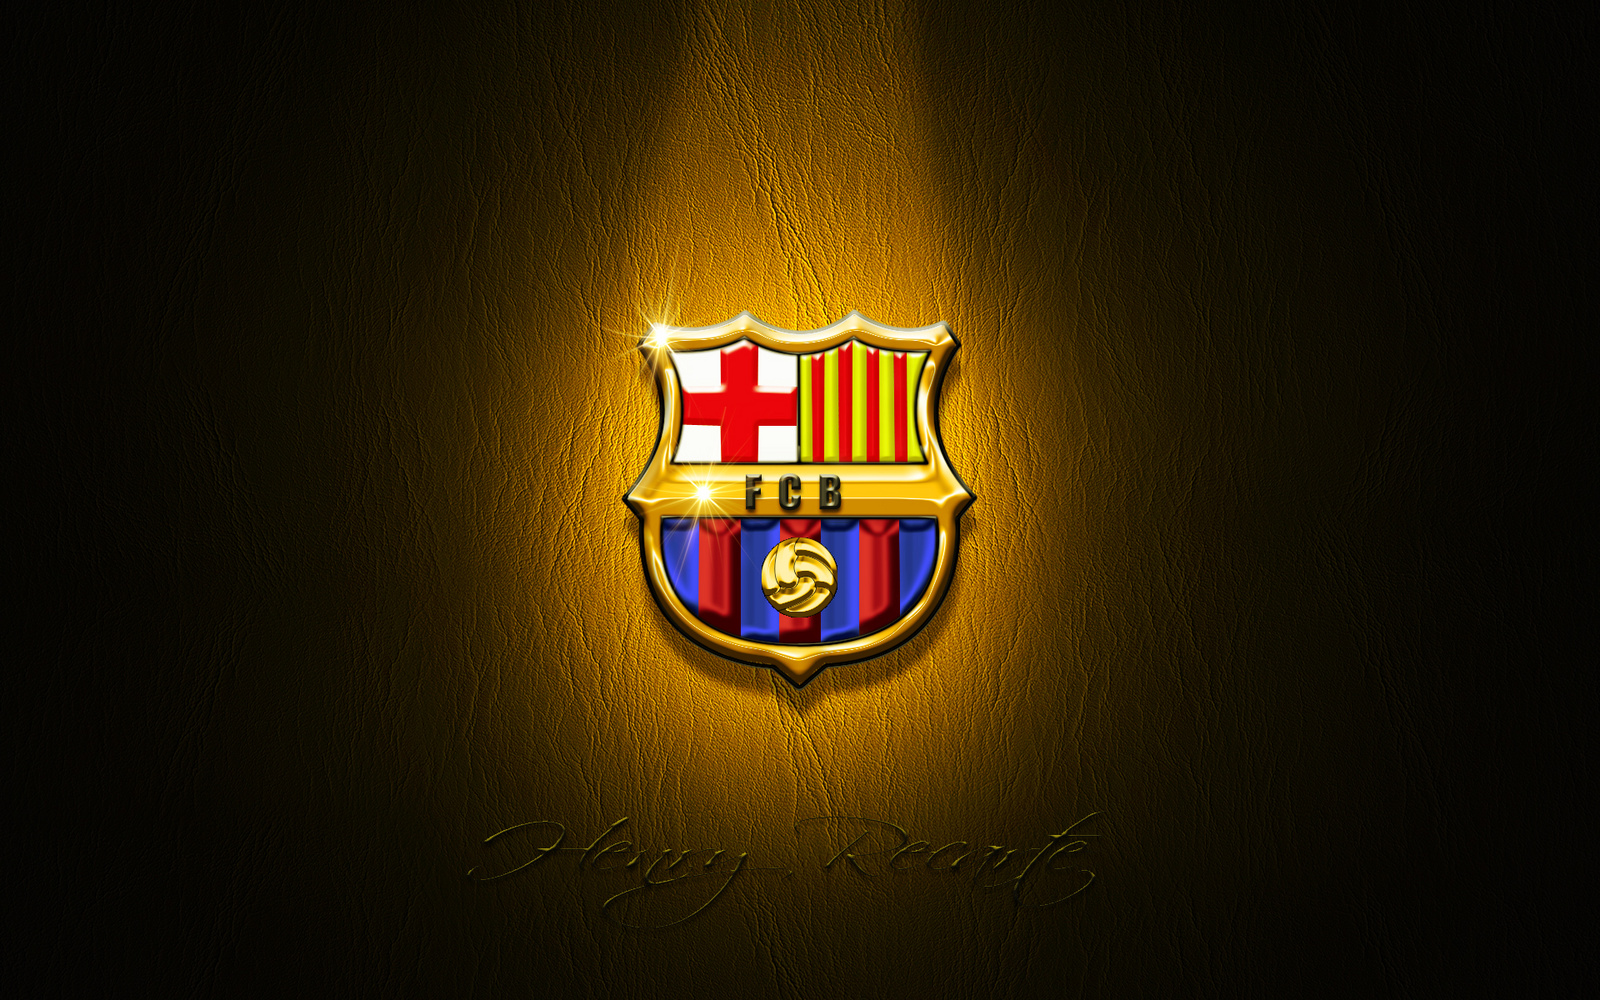 Every Thing Hd Wallpapers Fc Barcelona Soccer Club New Hd Wallpapers 2013